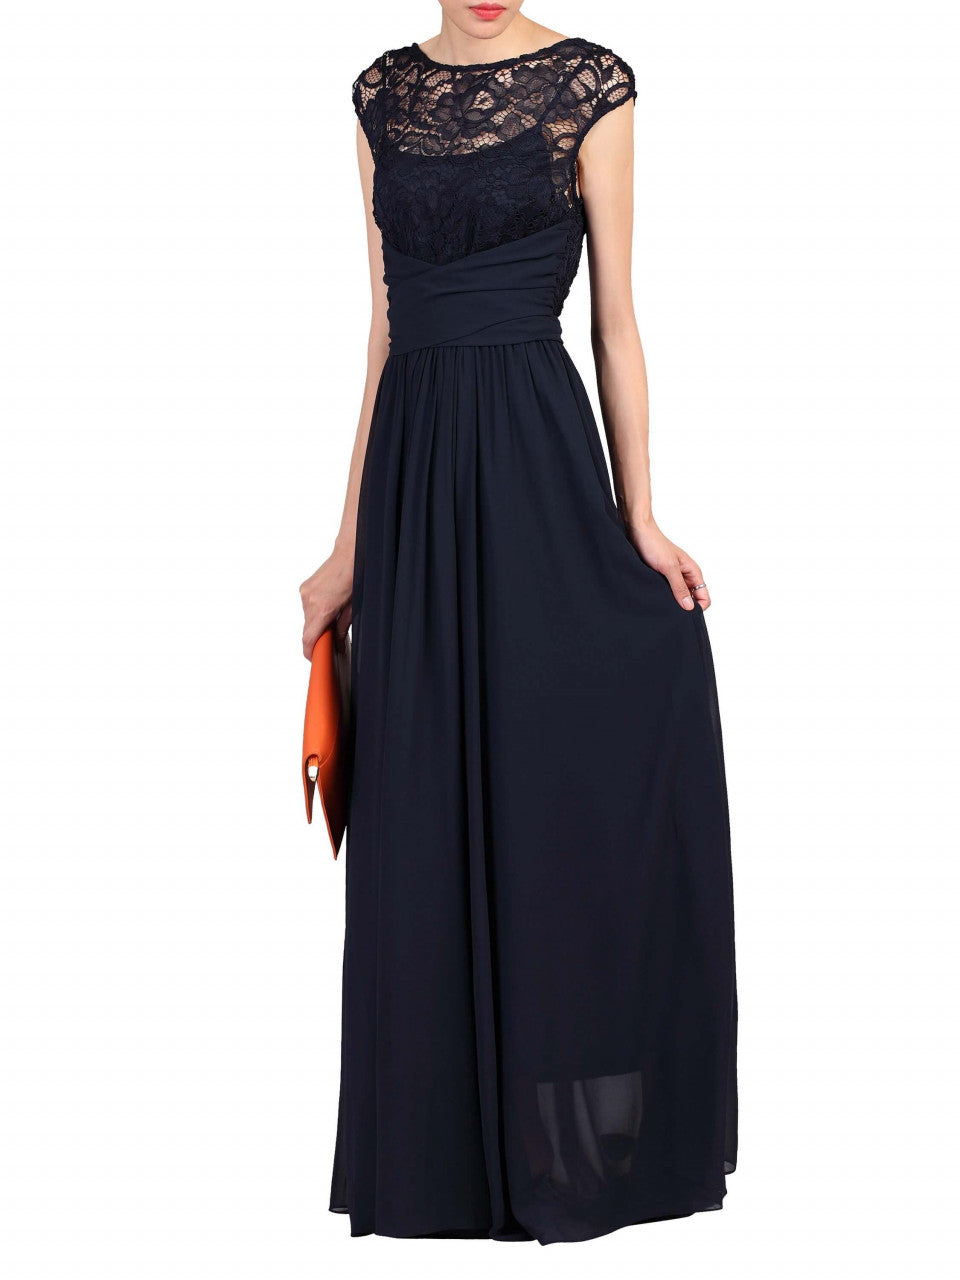 950dff9c47c4 ... Load image into Gallery viewer, Jolie Moi Lace Bodice Pleated Maxi Dress,  Navy ...